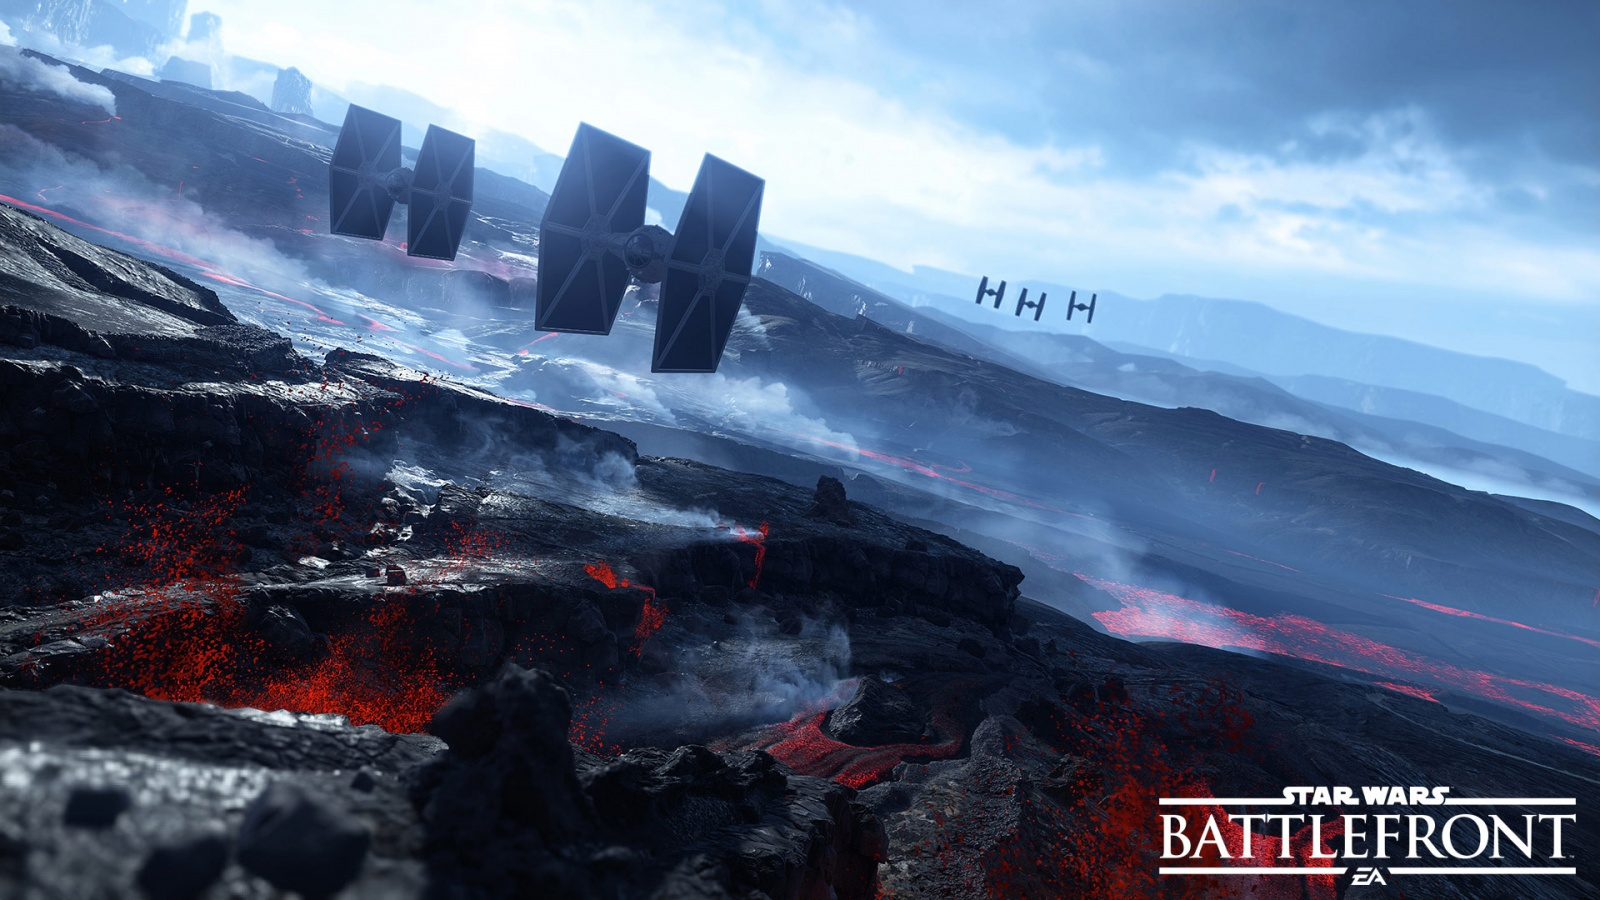 Star Wars Battlefront Sullust Wallpapers in jpg format for 1600x900